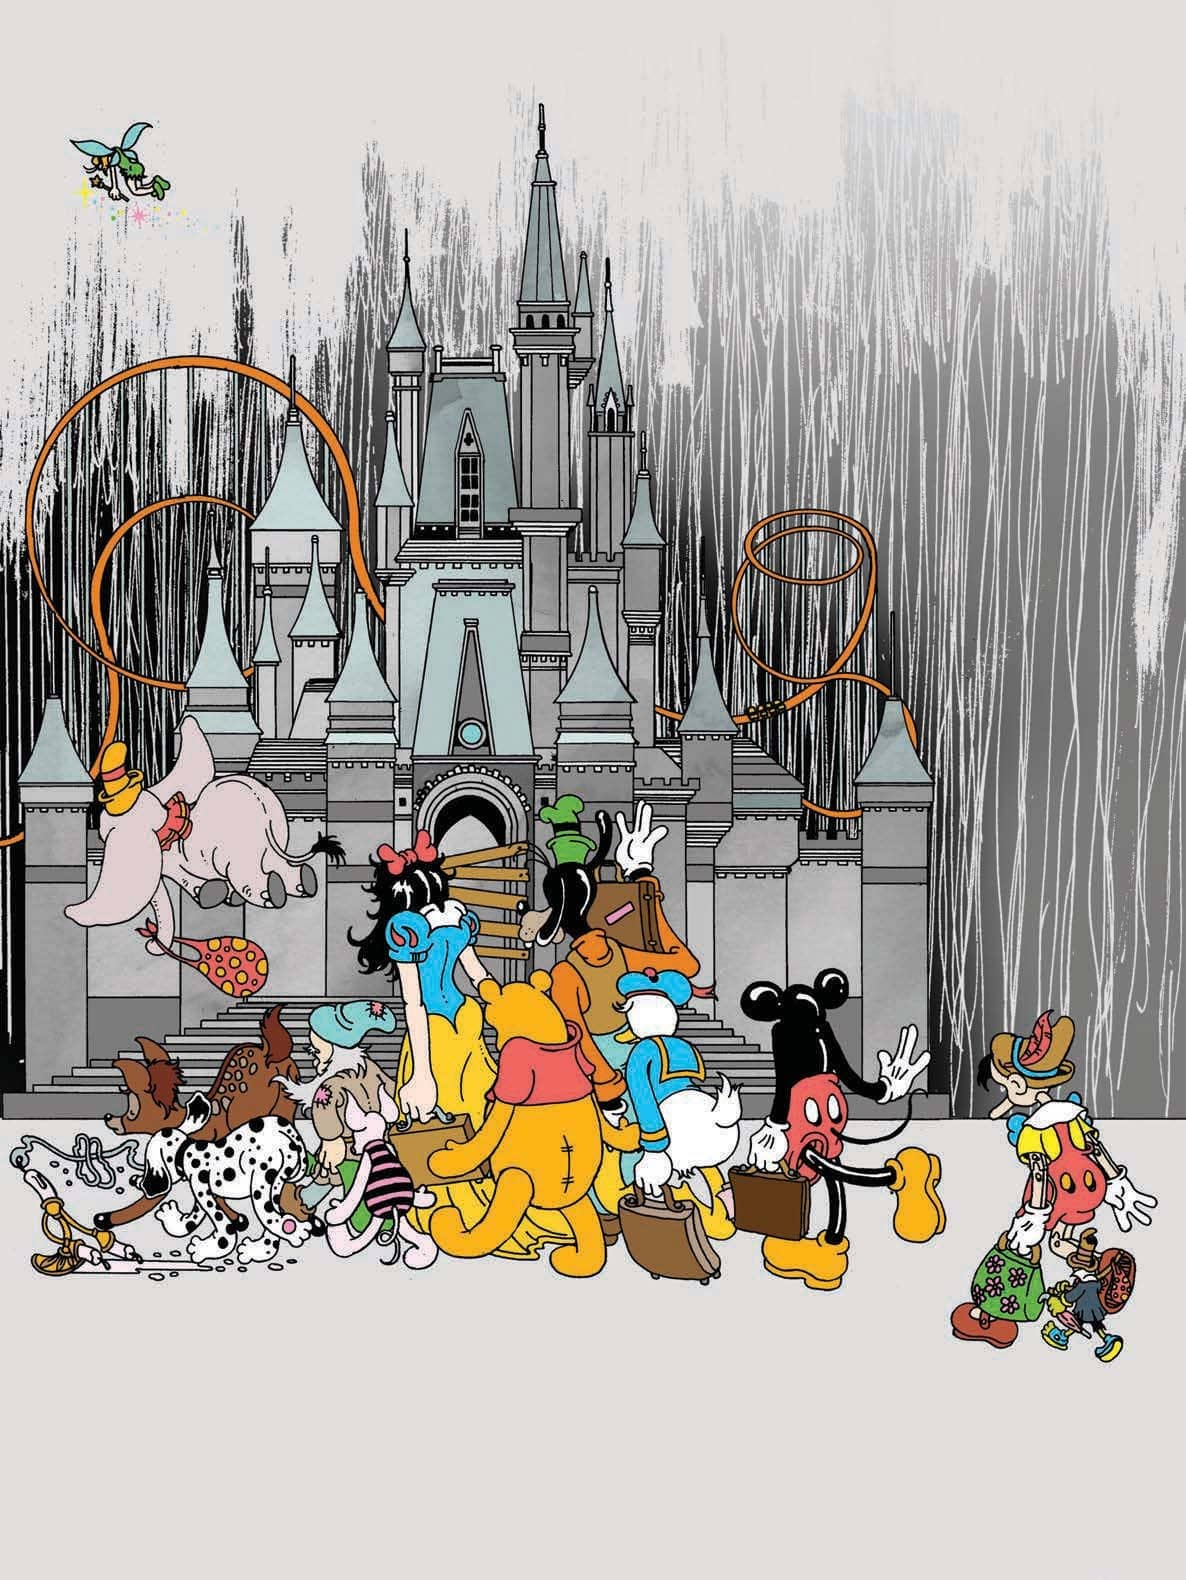 Disney's Not the Happiest Place On Earth These Days